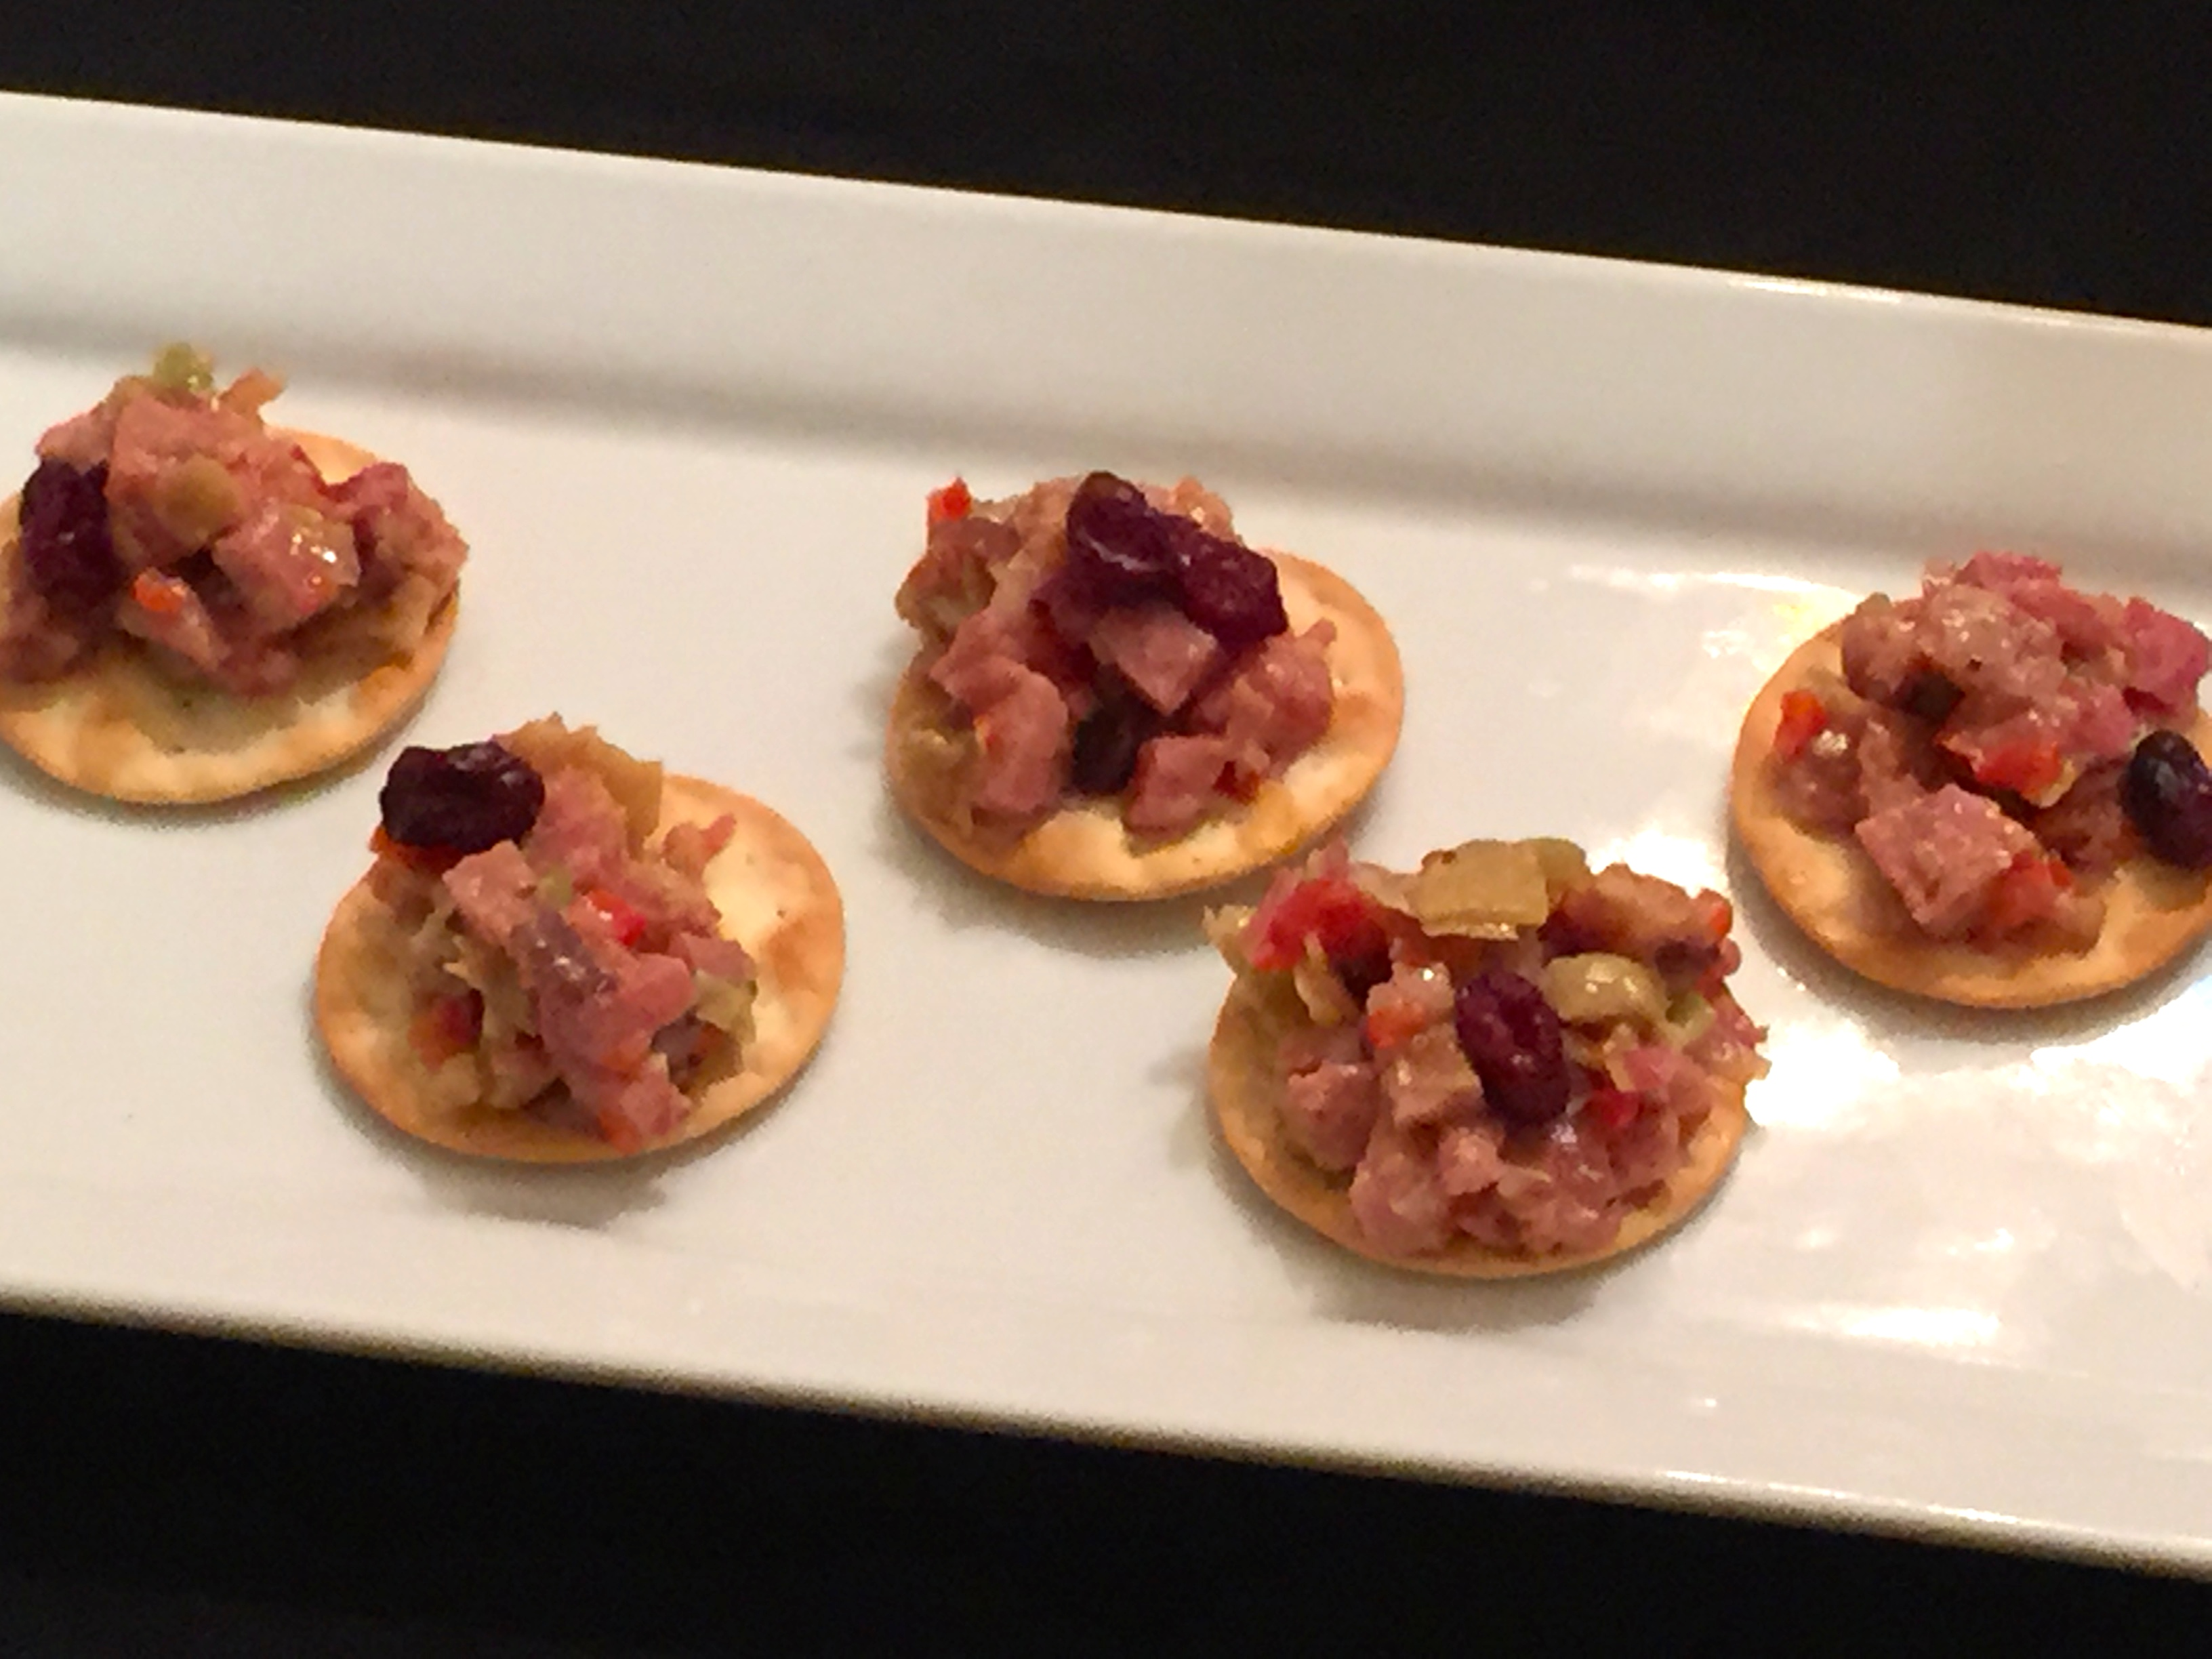 ham, artichoke and cranberry salad on water crackers